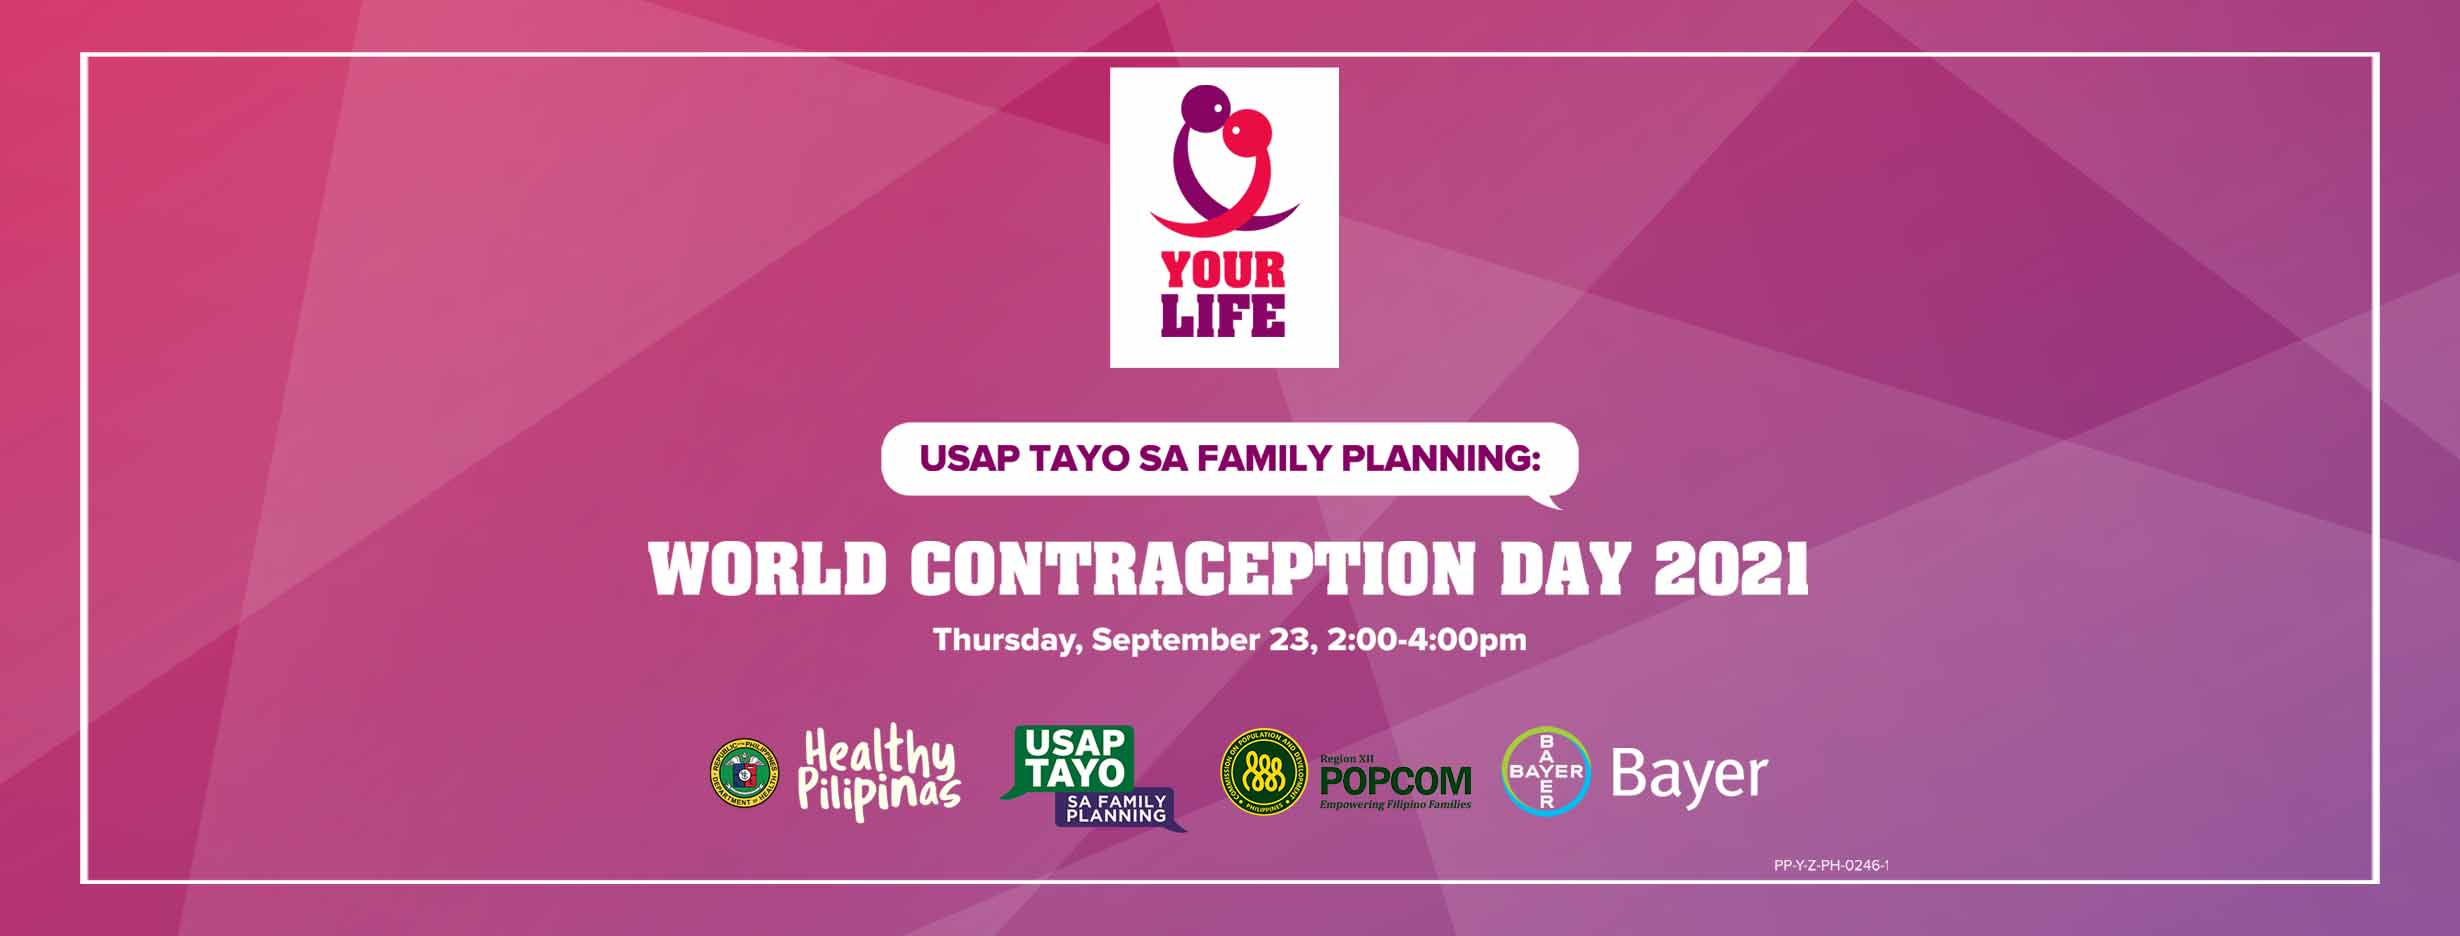 World Contraception Day banner